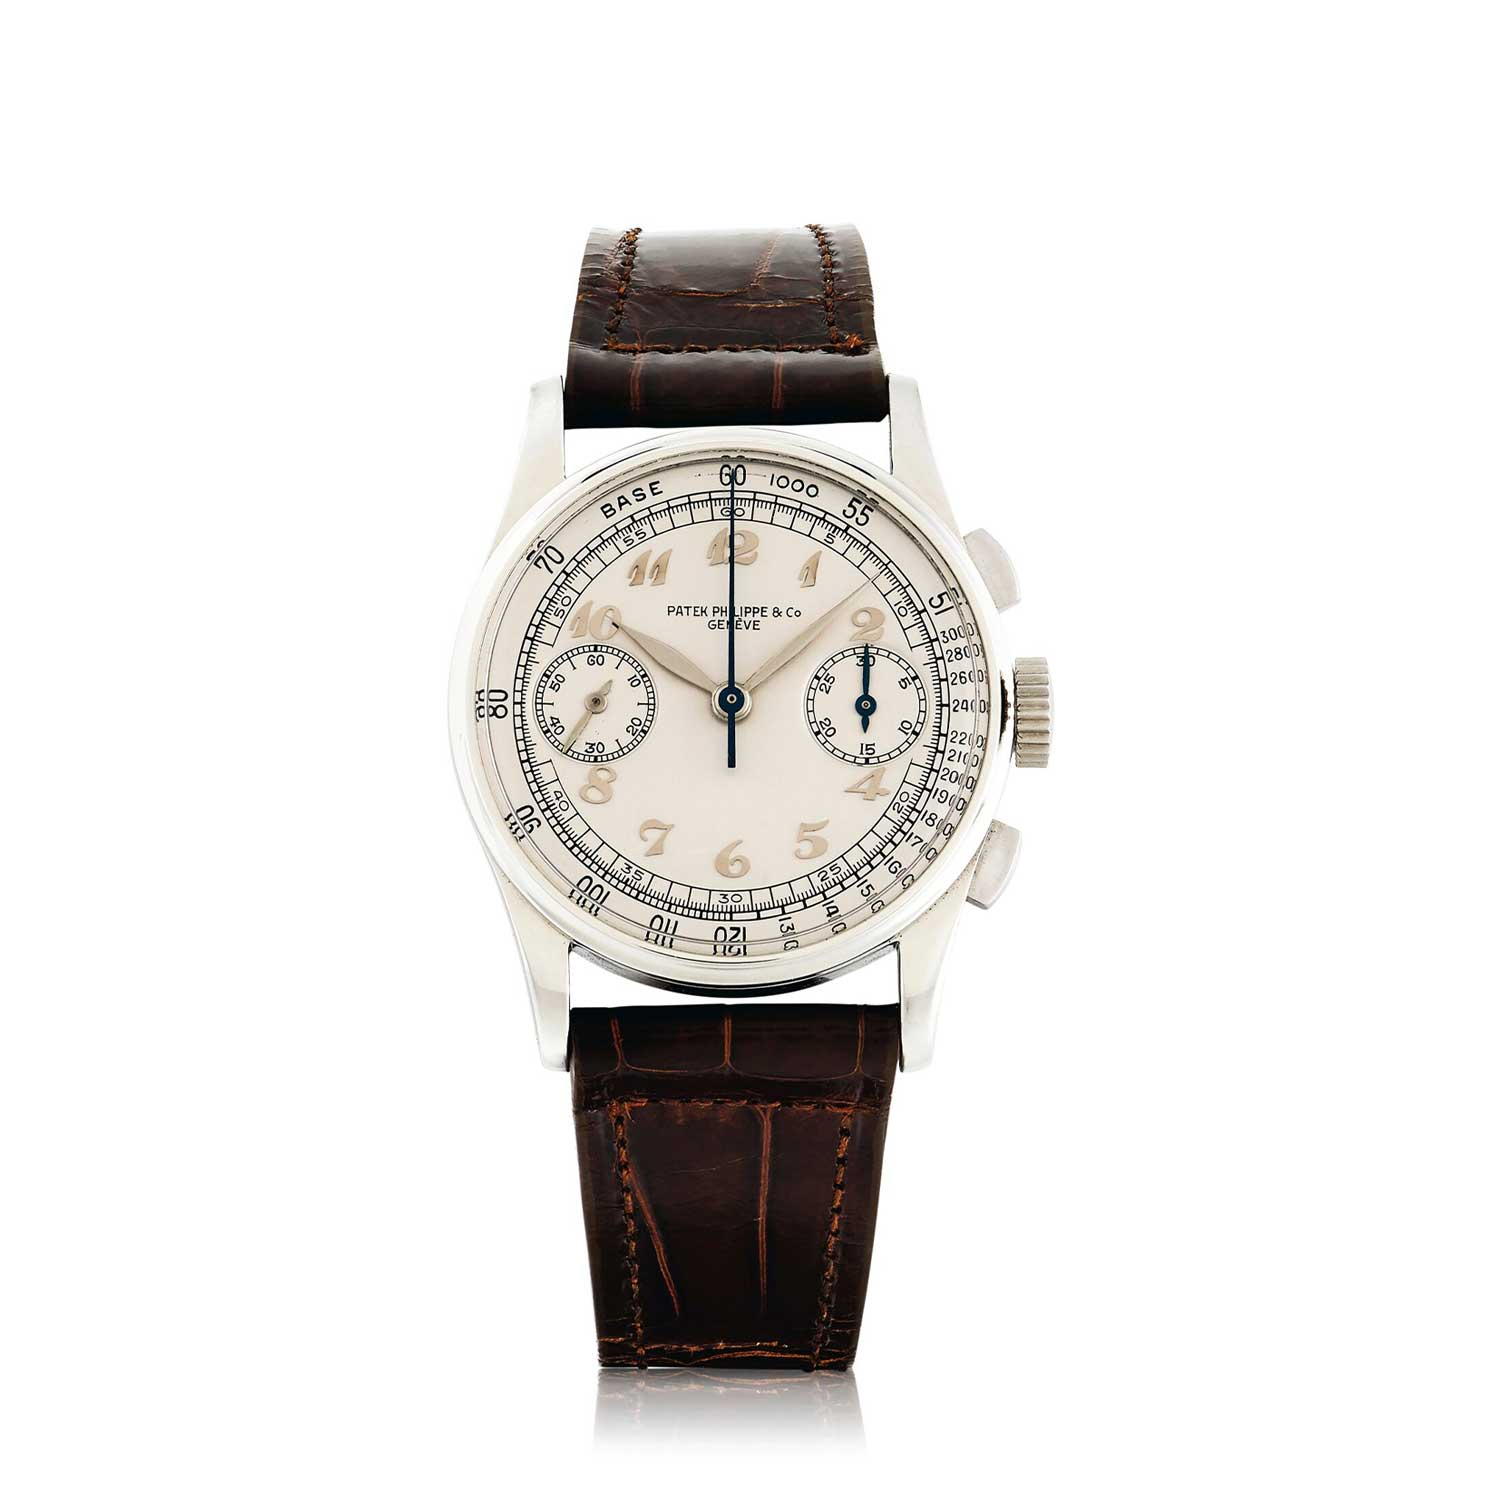 1940 Patek Philippe ref. 130 steel chronograph with applied Breguet hour markers (Image: Sothebys.com)